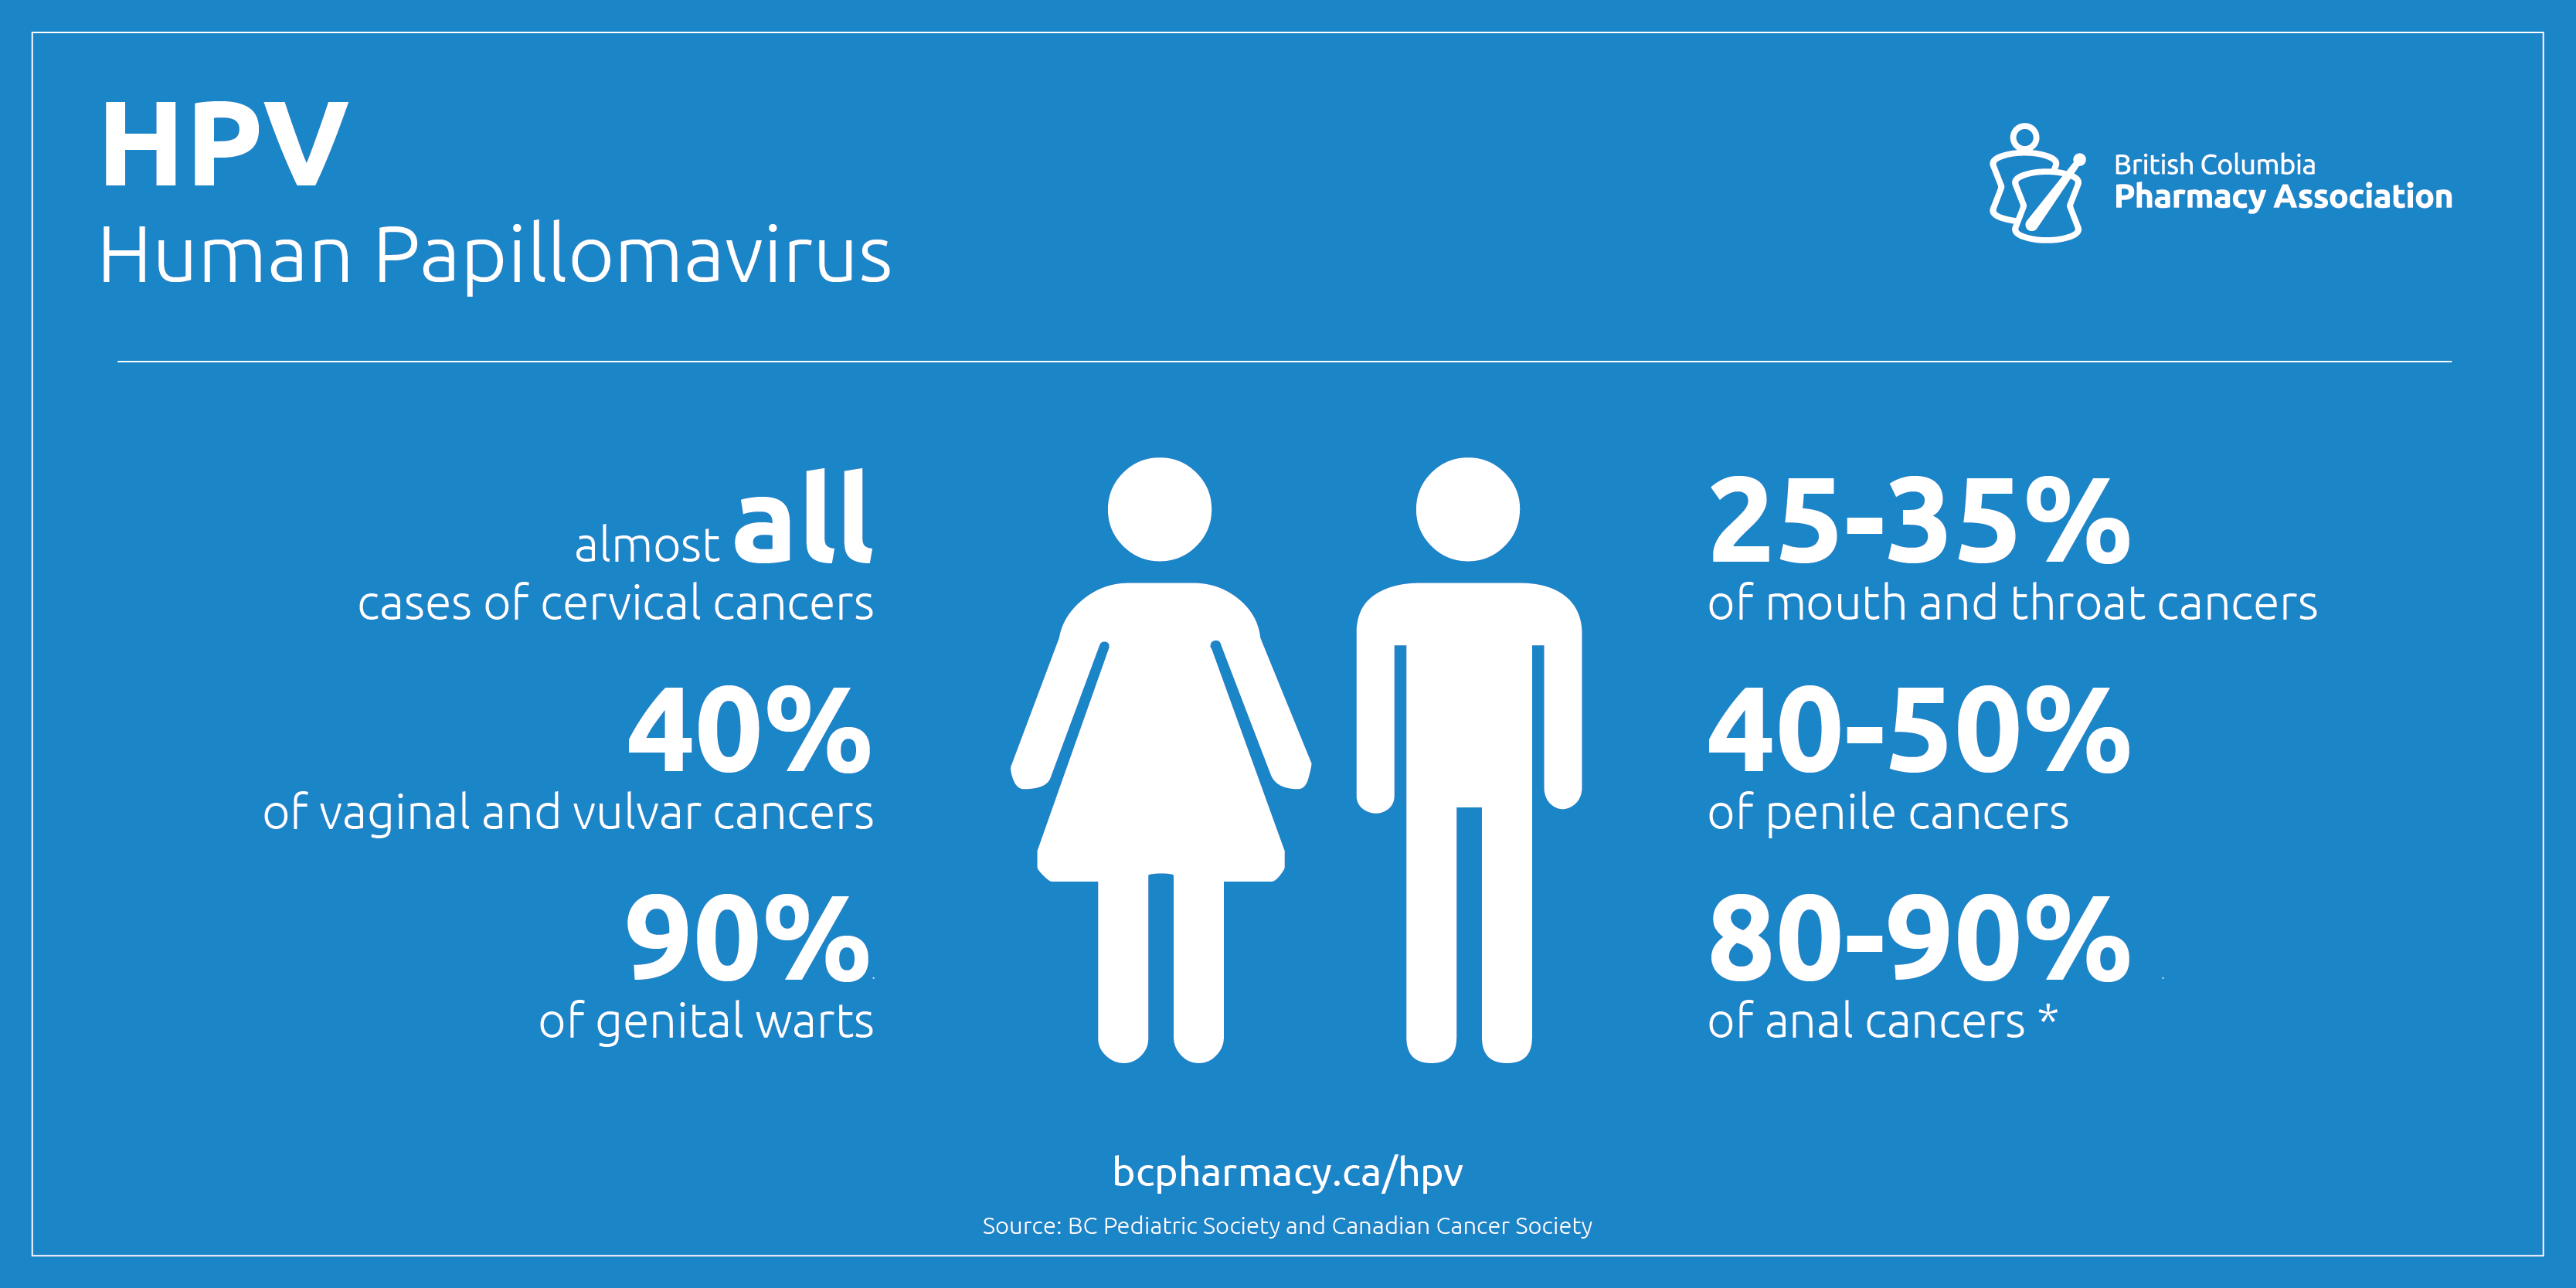 HPV can affect your life.